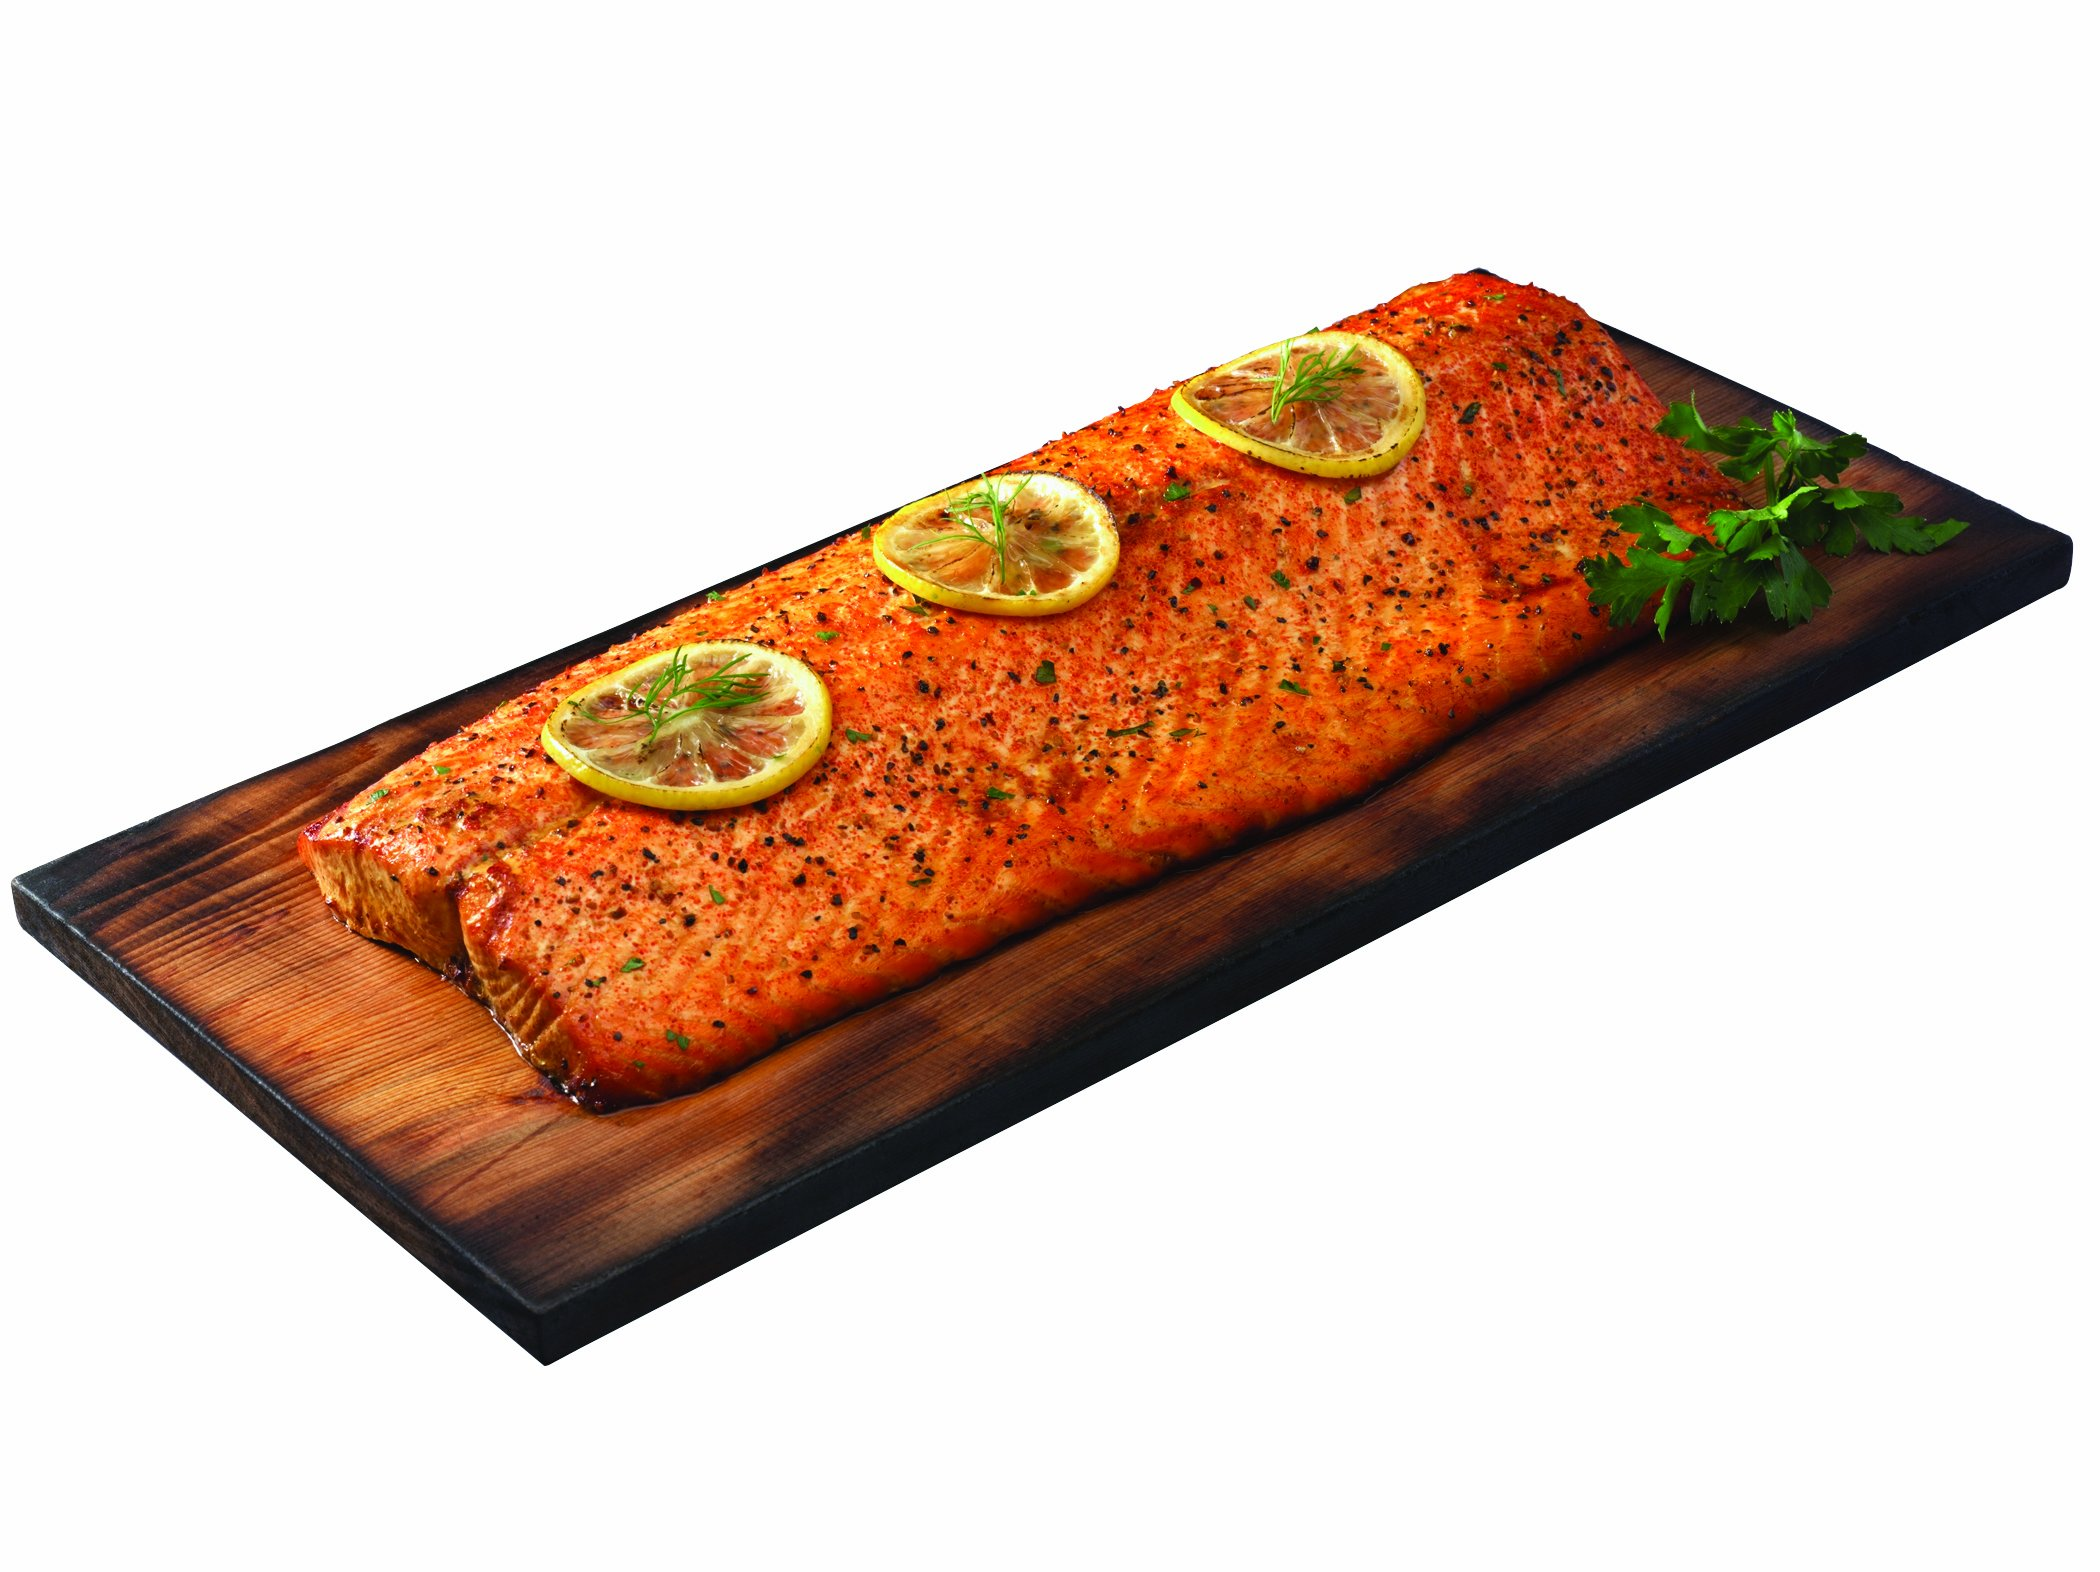 Char-Broil Slotted Grilling Planks, Maple